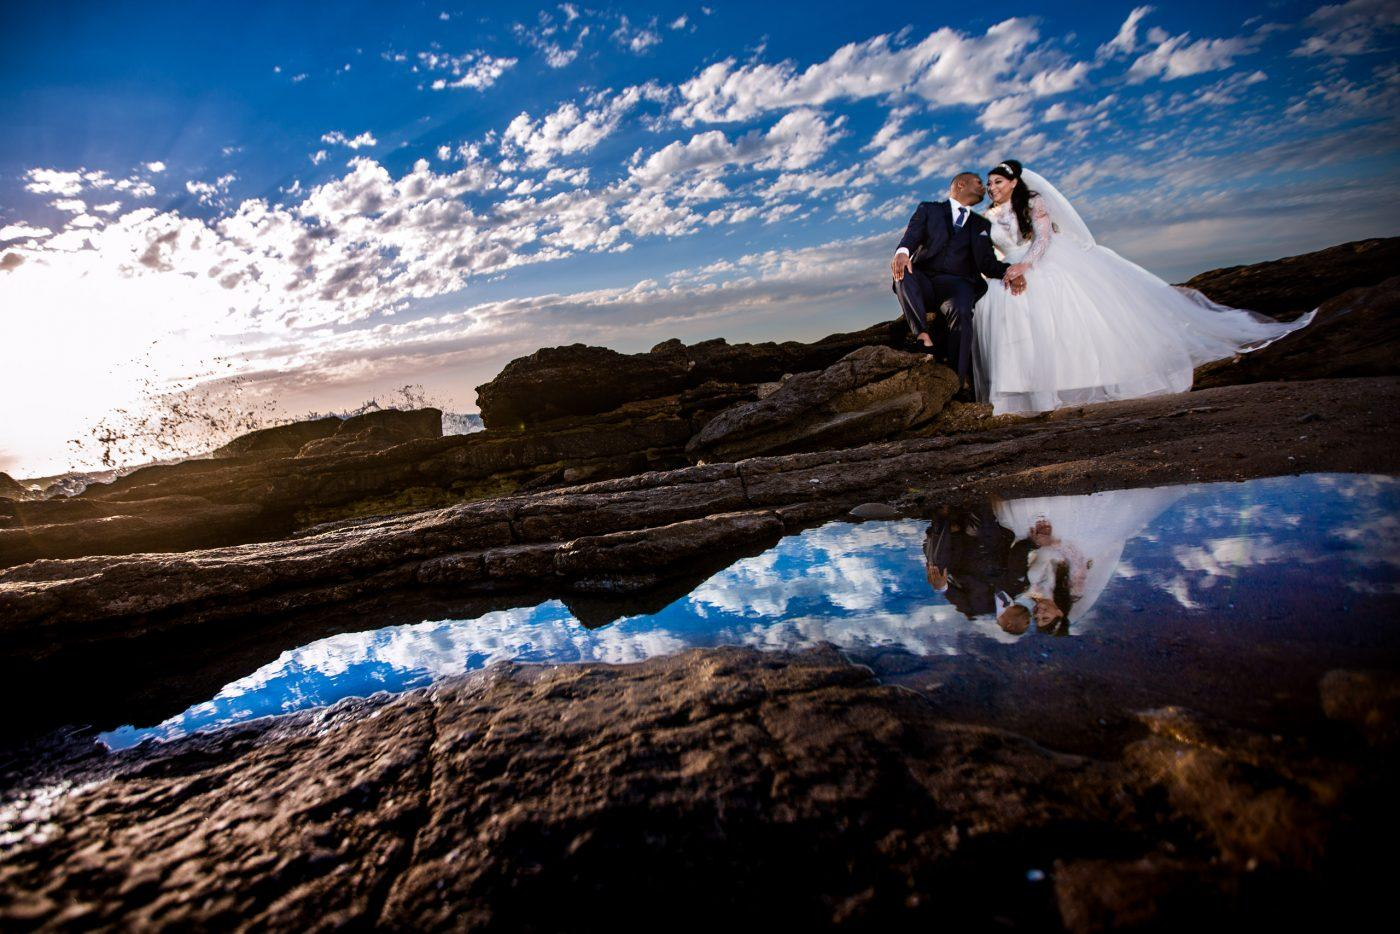 Beautiful wedding photography on Agadir's beach